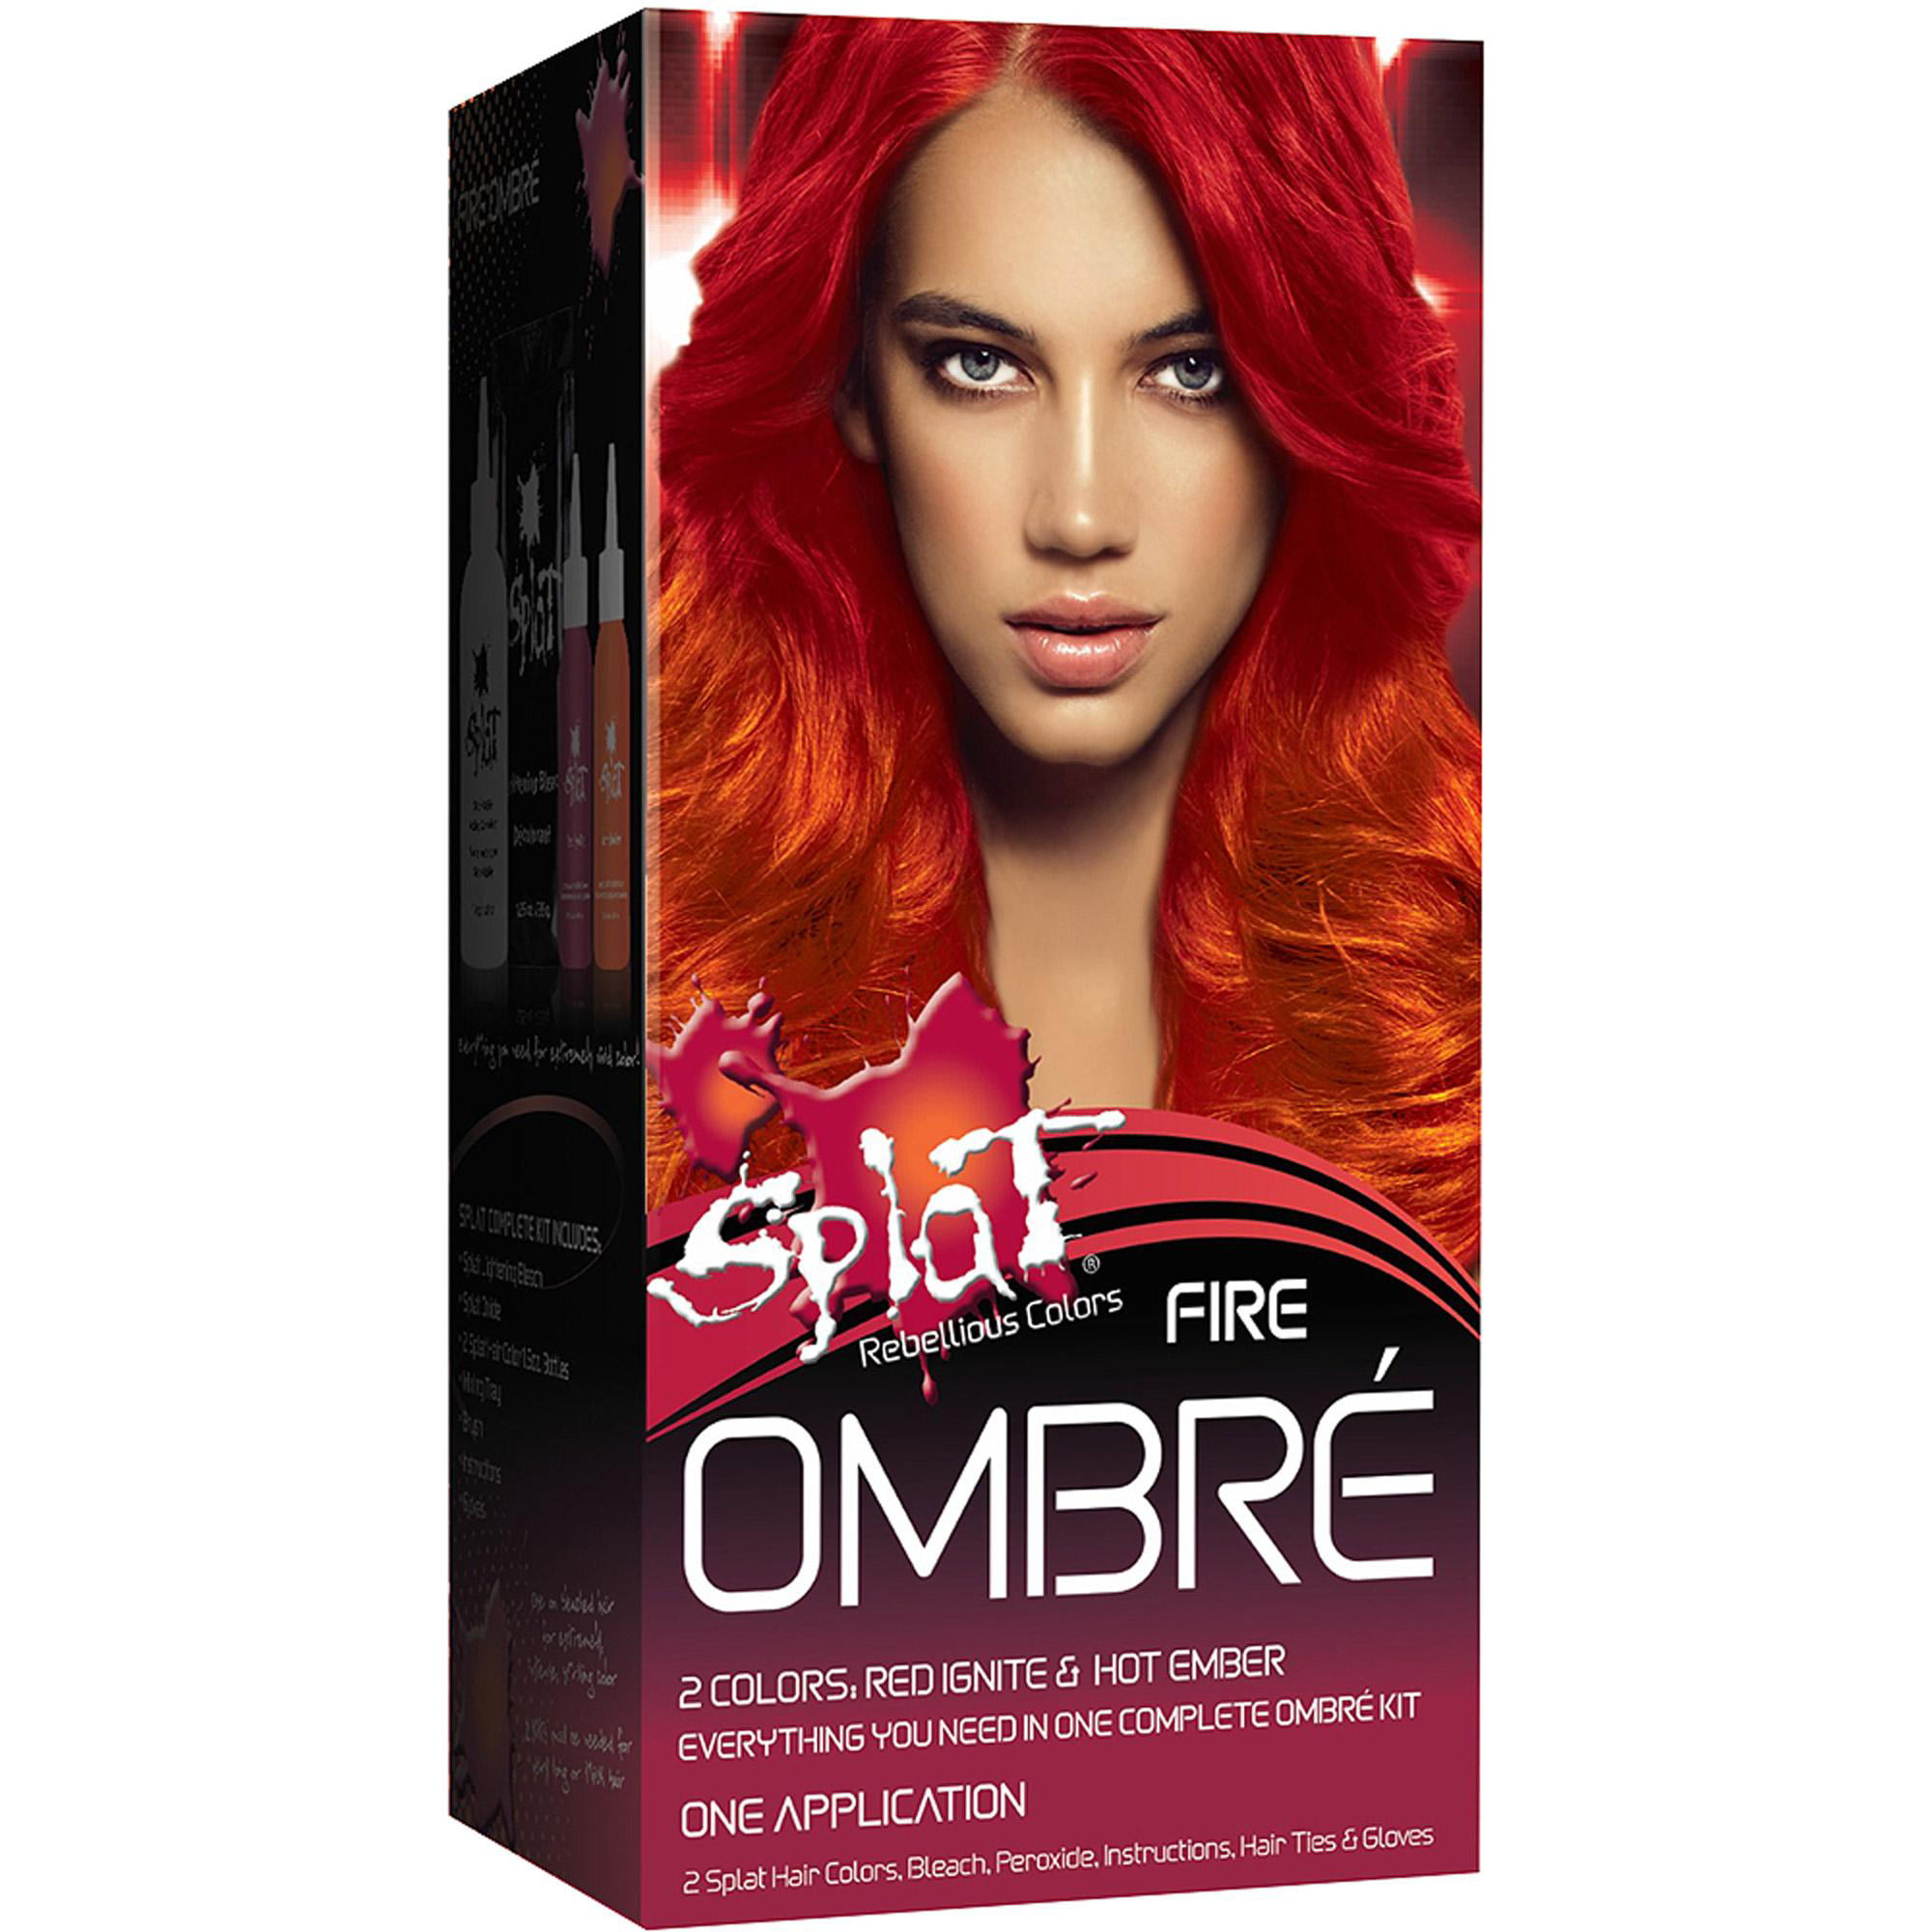 Splat Fire Ombre Semi Permanent Hair Dye For All Hair Colors